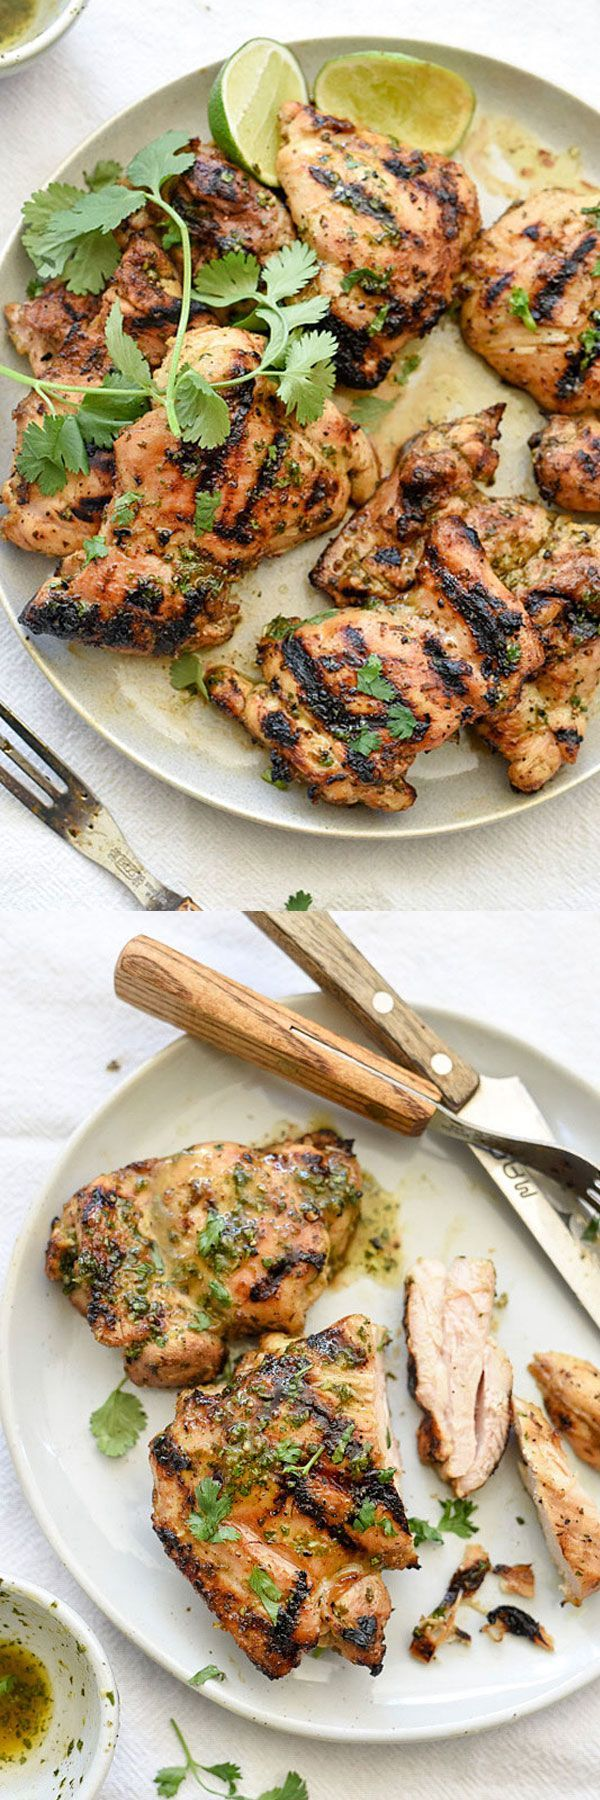 Both lime juice and zest make this a super flavorful marinade for grilled chicken thighs | foodiecrush.com #chicken #recipe